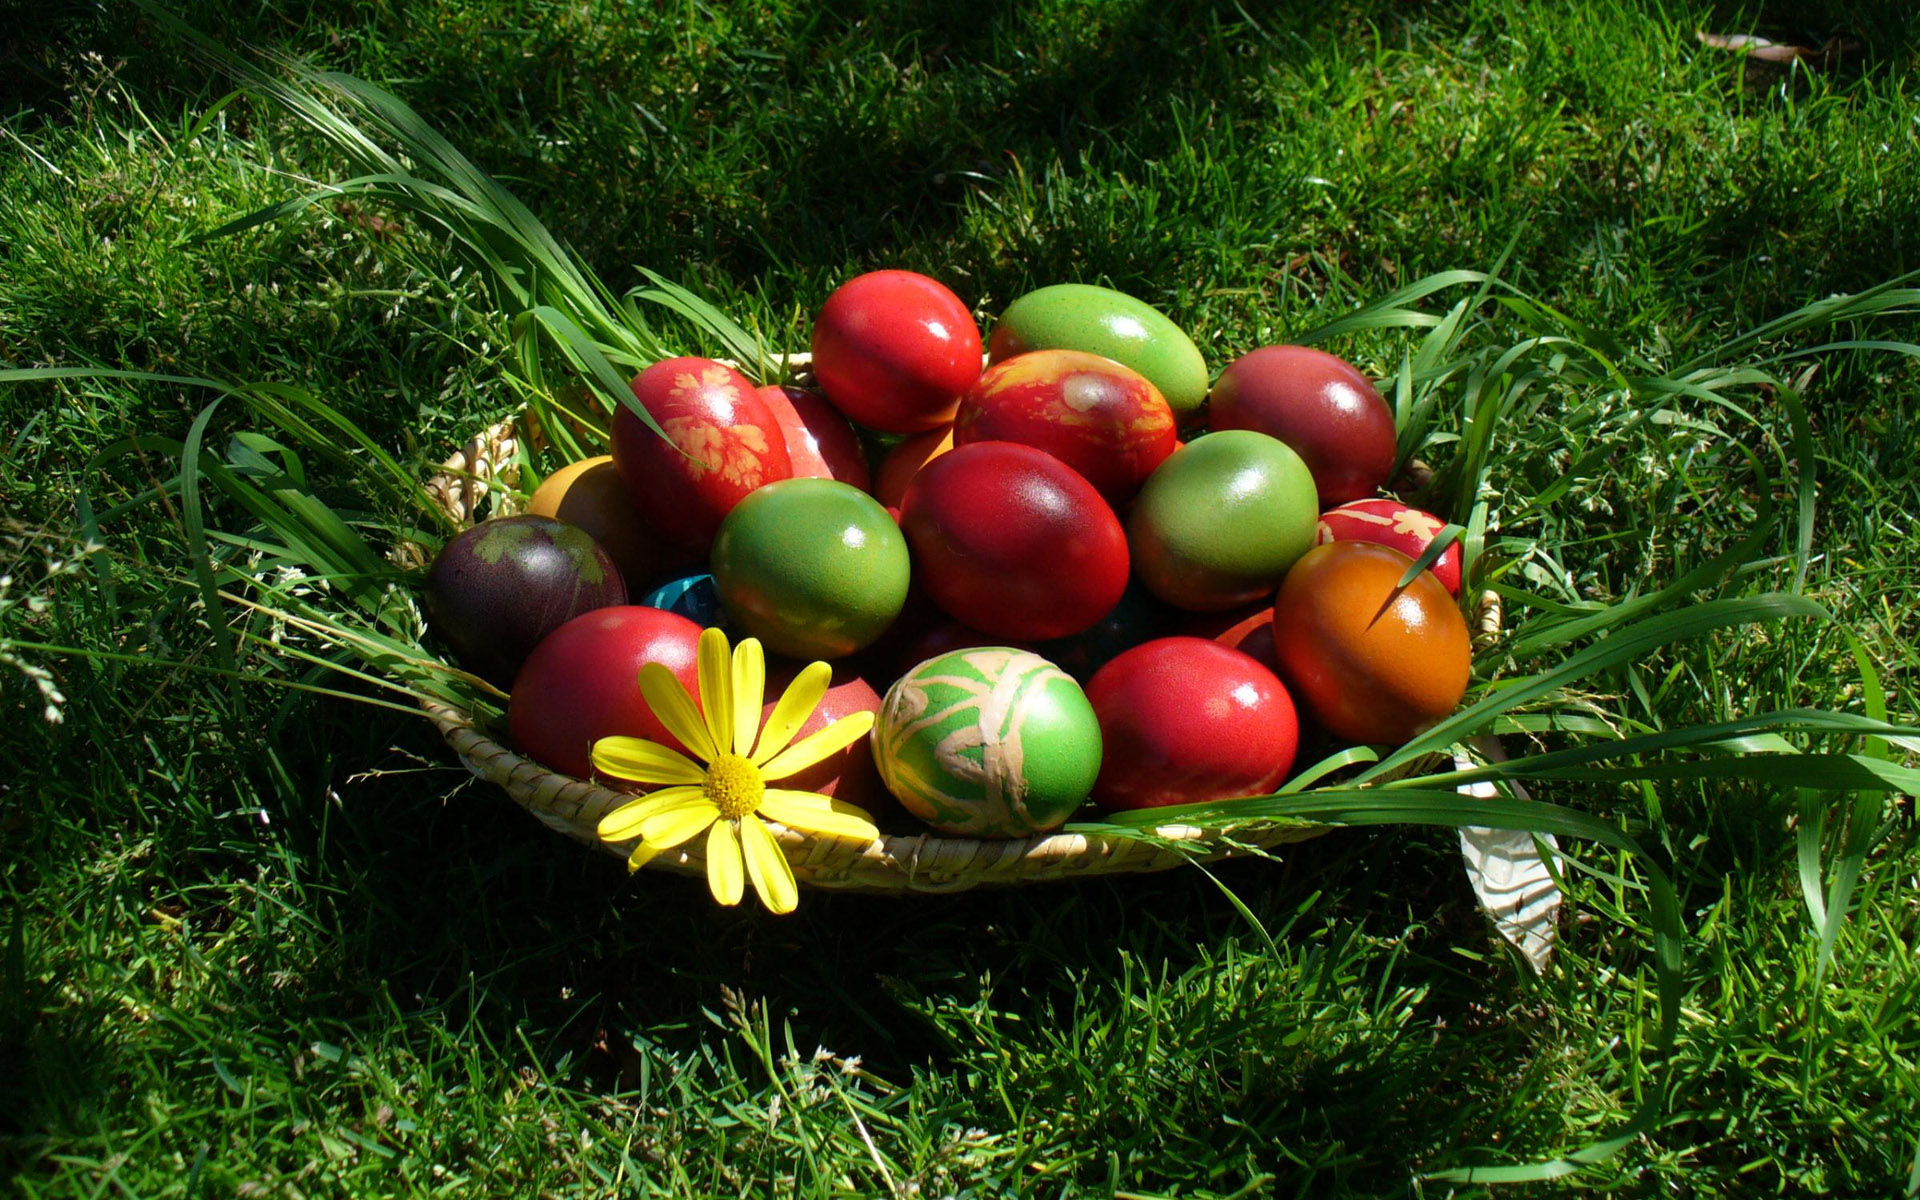 Image The Easter Egg Holidays Wallpapers And Stock Photos